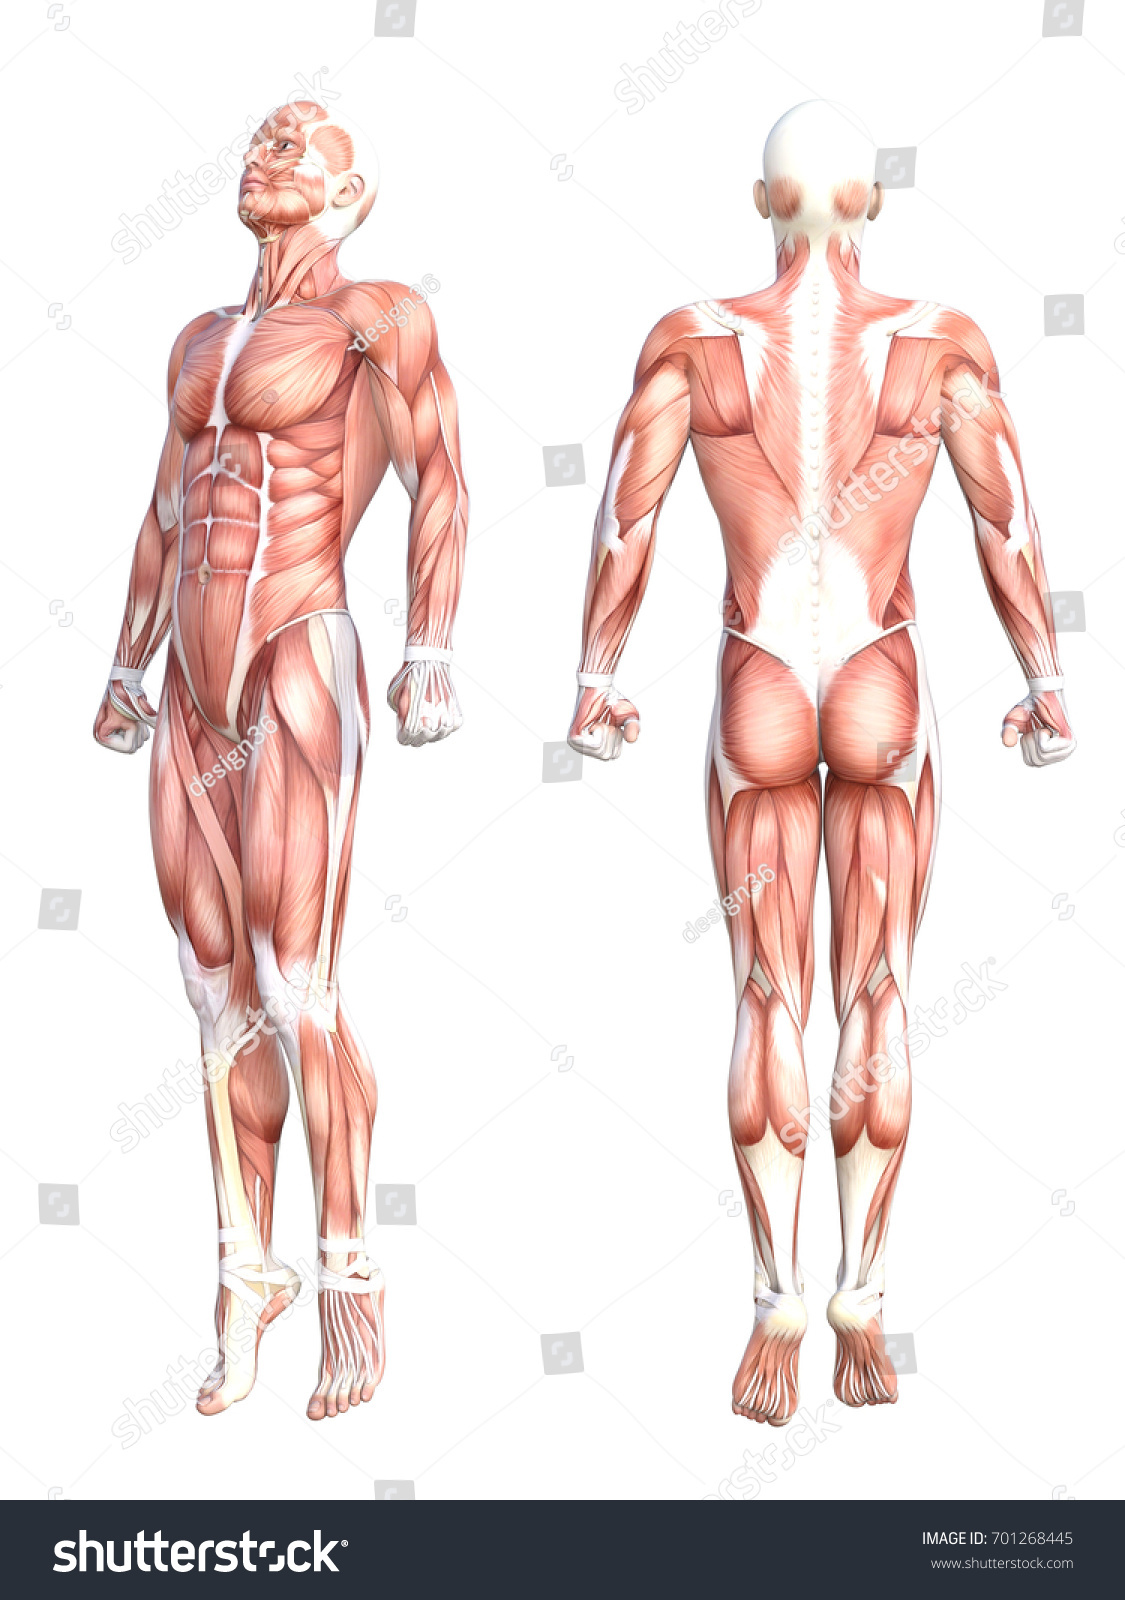 Conceptual Anatomy Healthy Skinless Human Body Stock Illustration